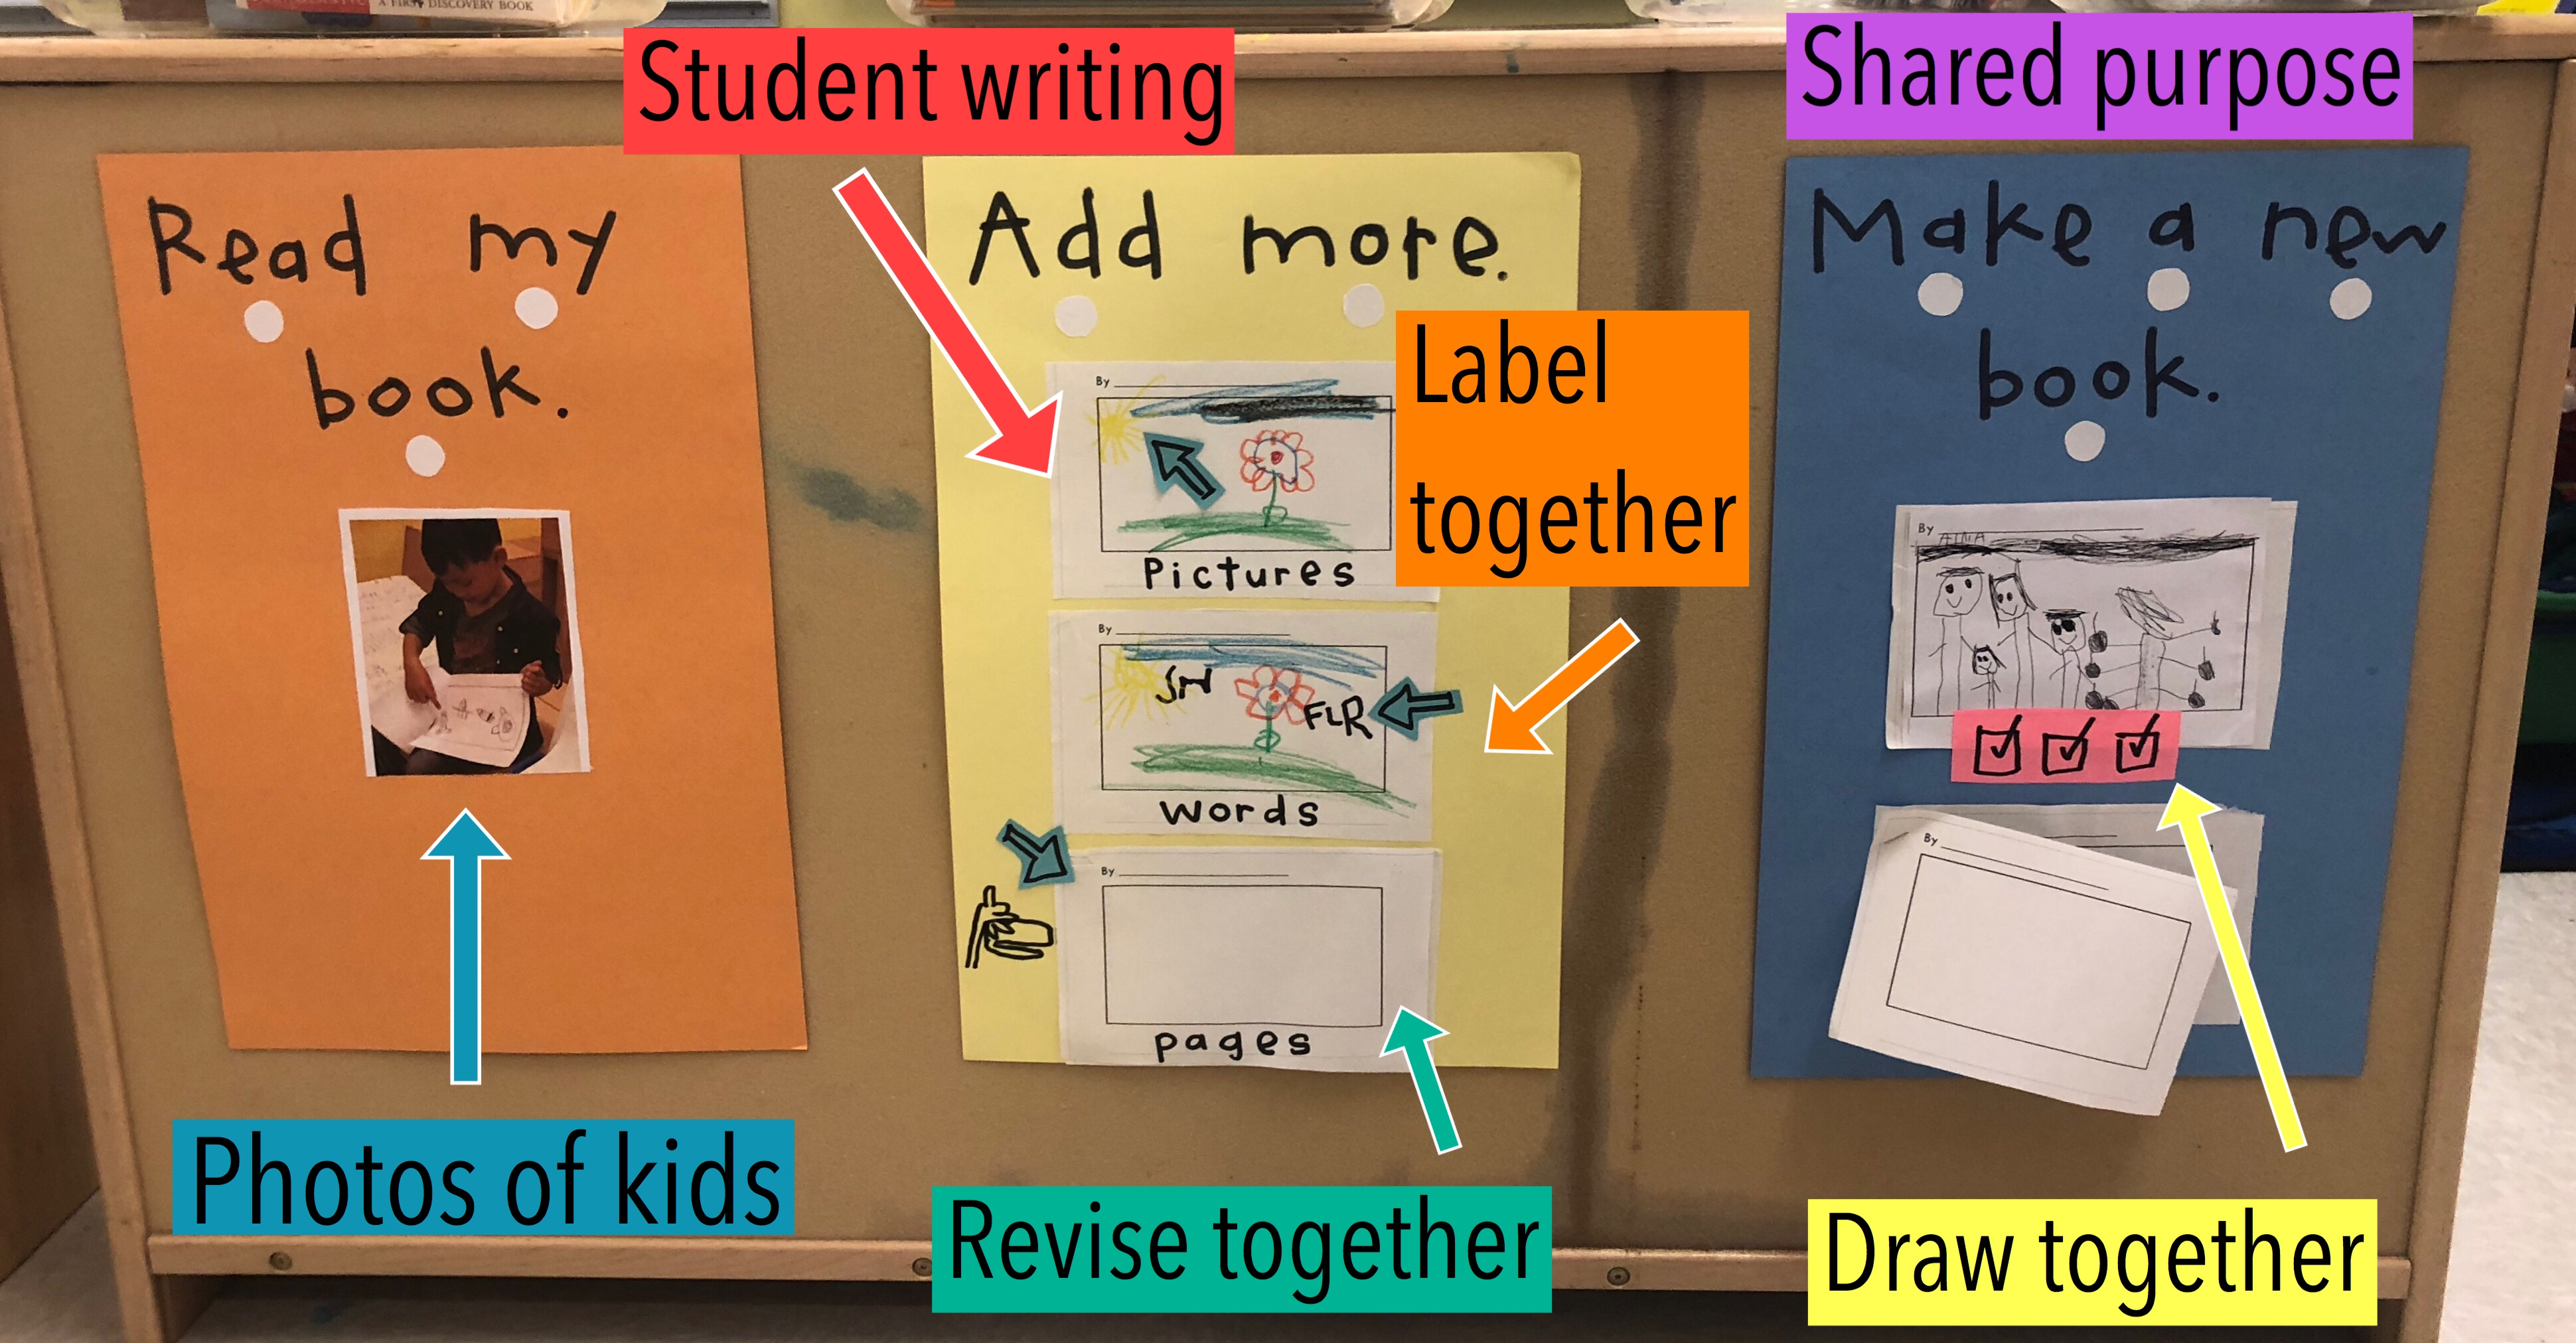 Six Ways To Make Charts More Student-Centered